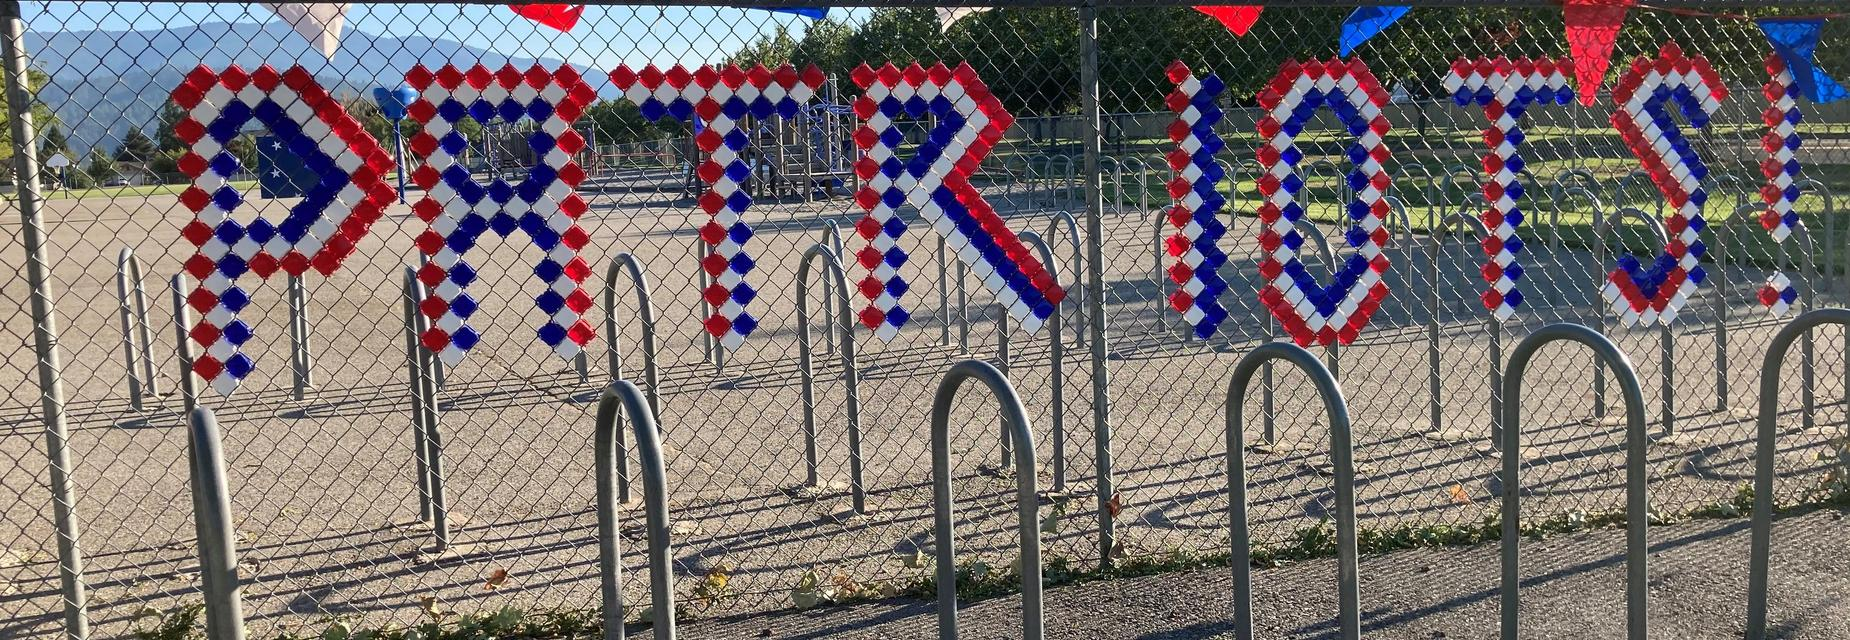 Patriots- in the fence line on the playground